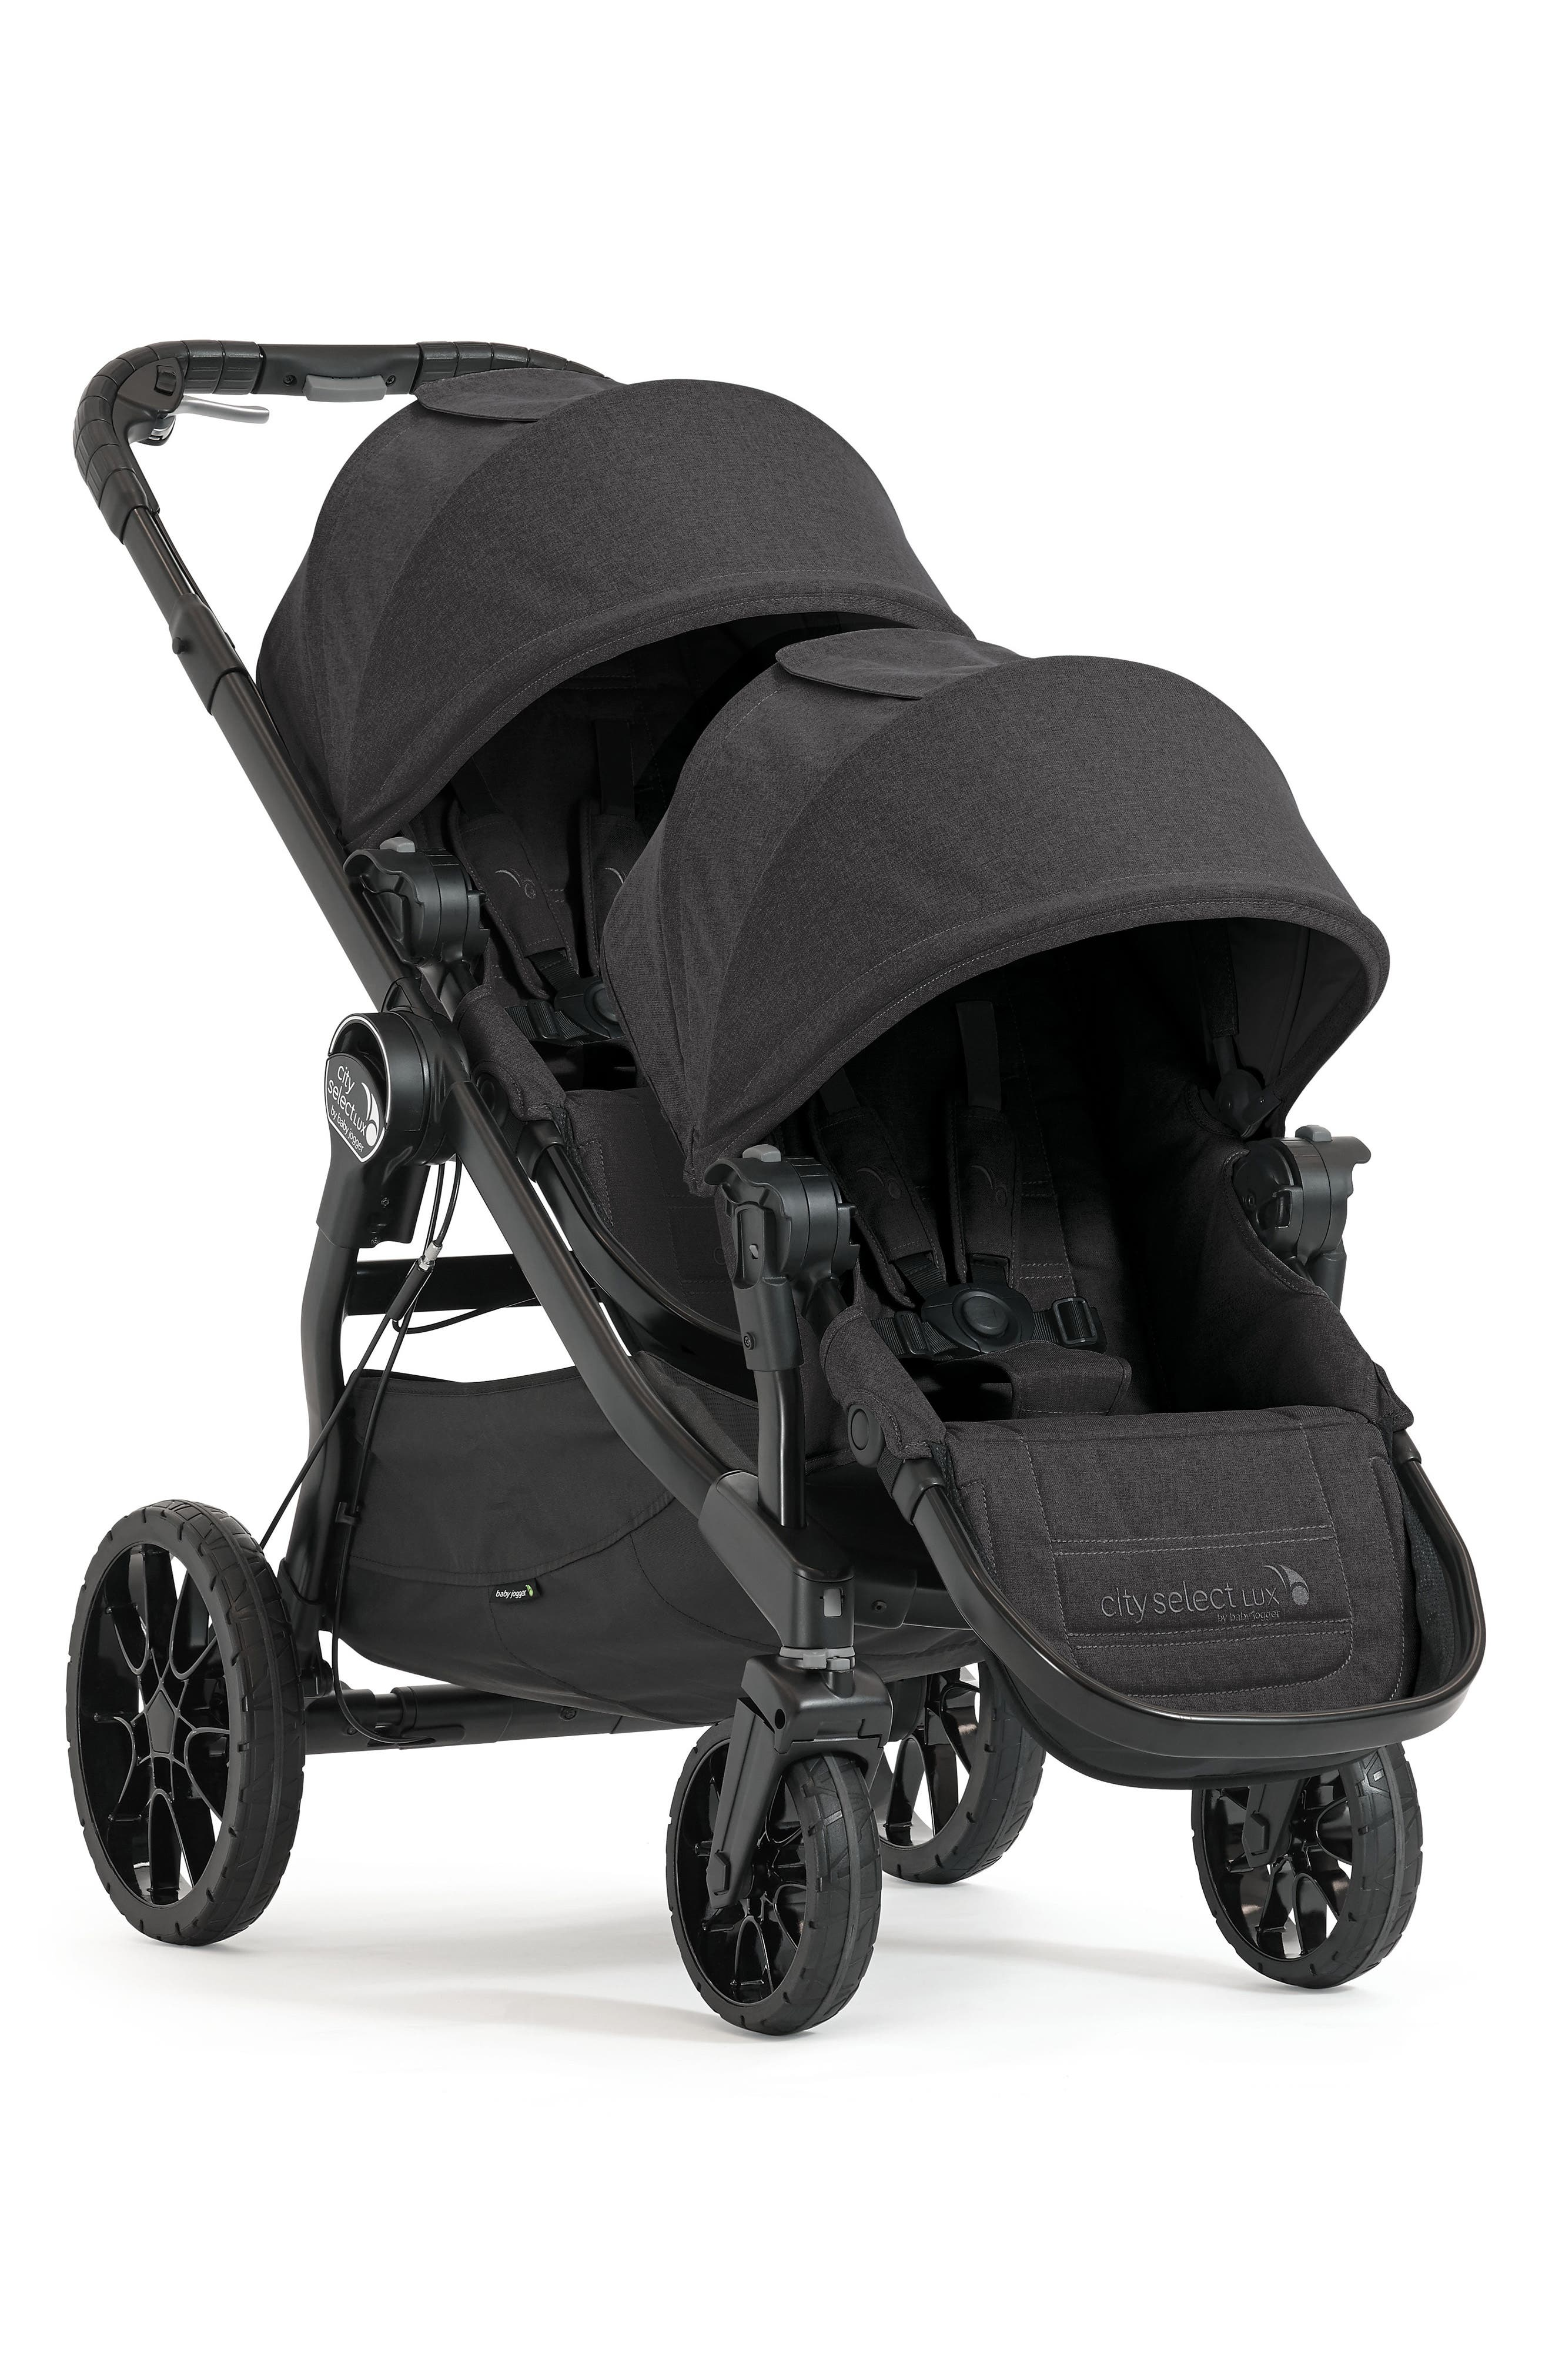 City Select<sup>®</sup> LUX Stroller with Second Seat,                             Main thumbnail 1, color,                             001